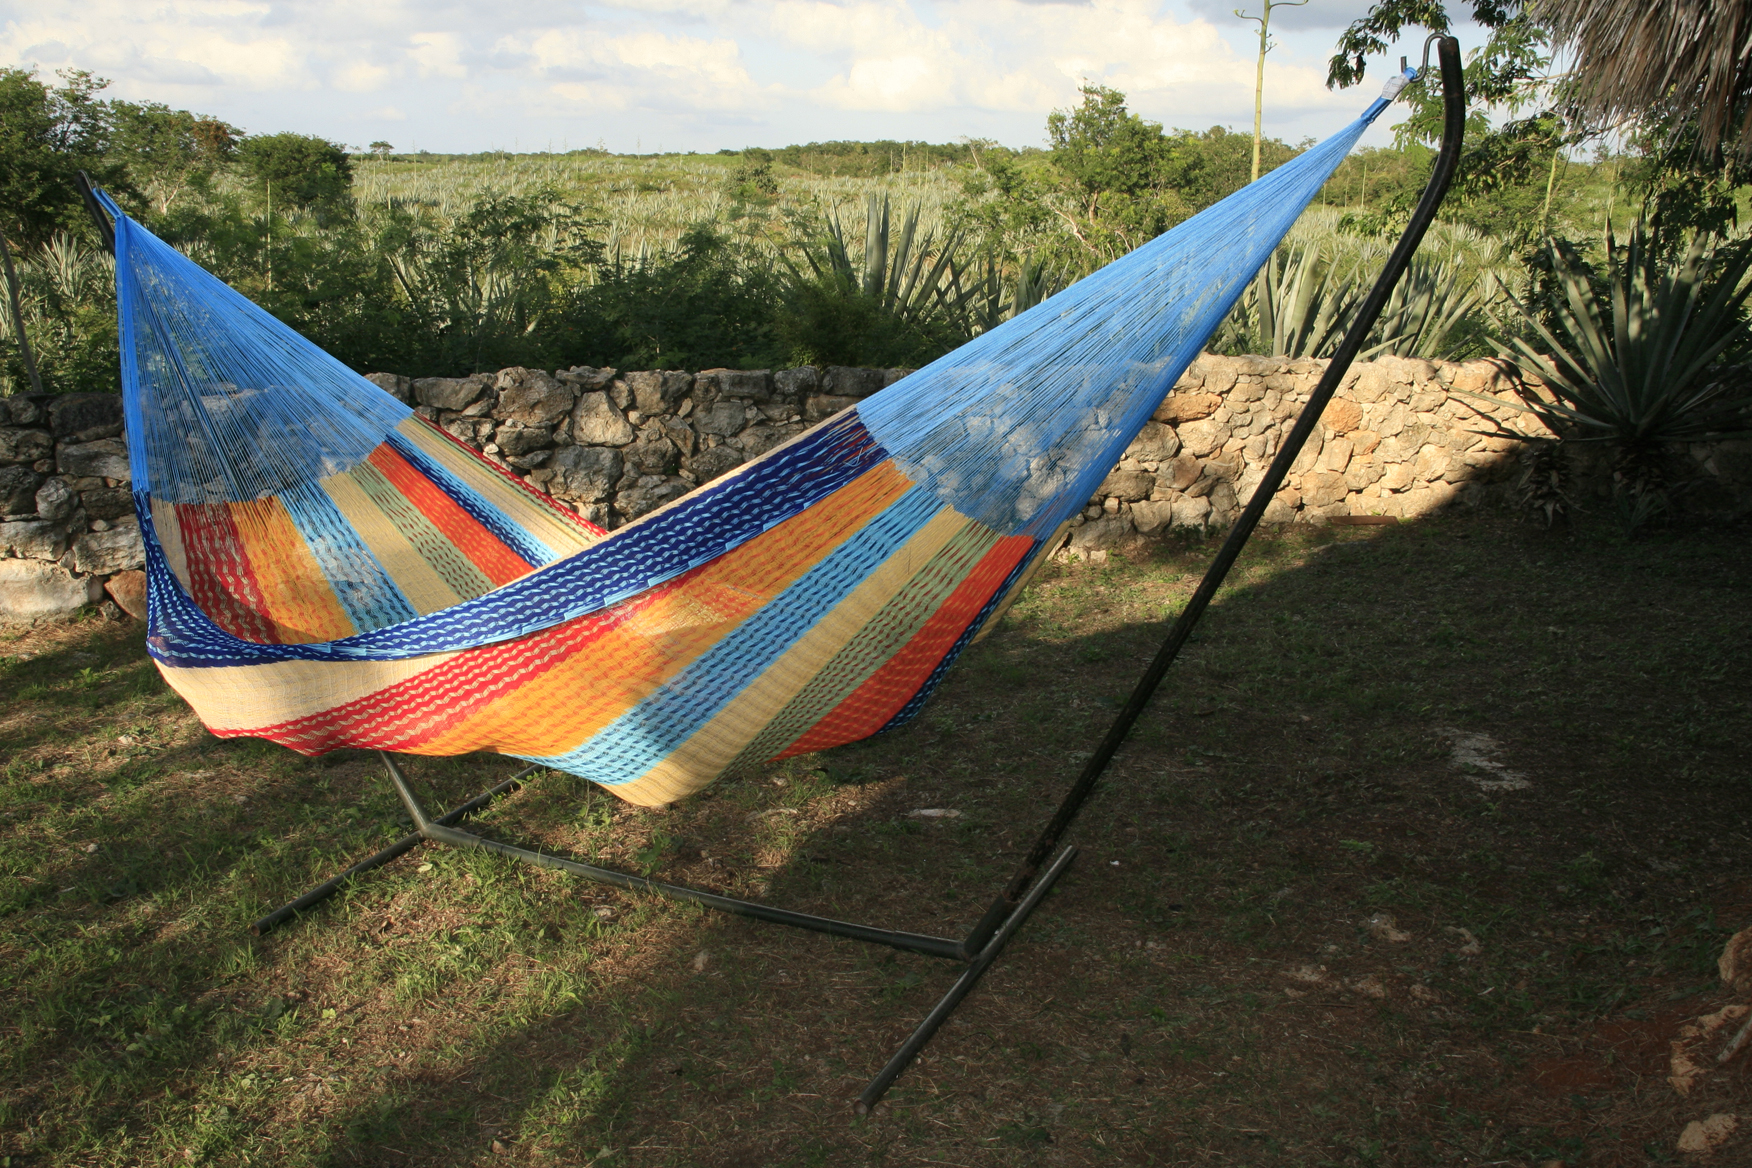 u la all way hammocks have on hammock thefeldstudien a guajira it colombian